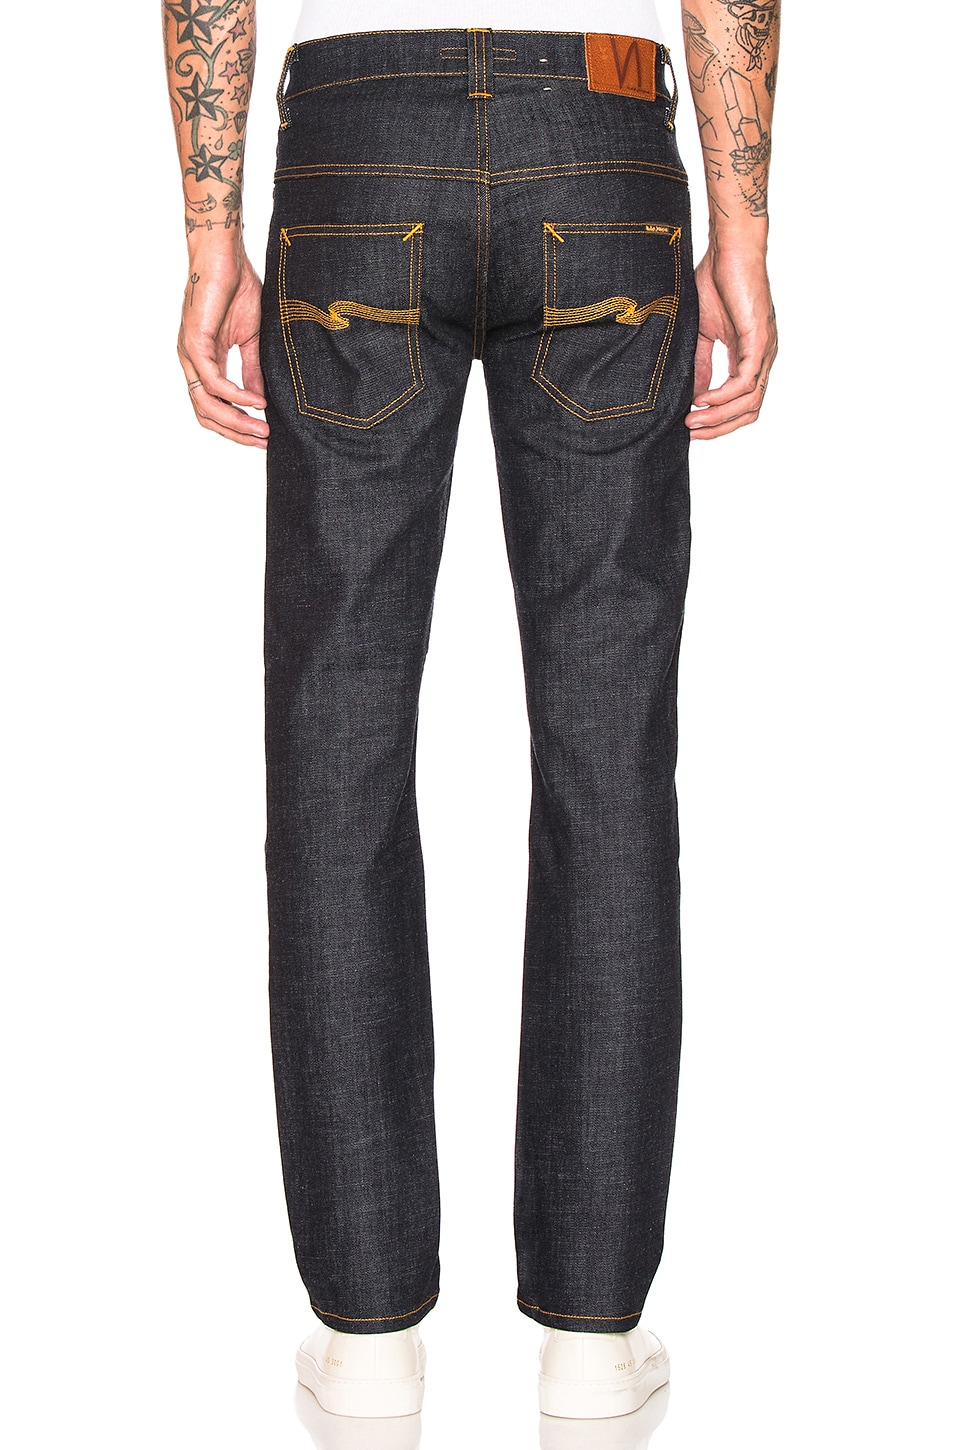 Nudie Jeans Thin Finn in Organic Dry Twill